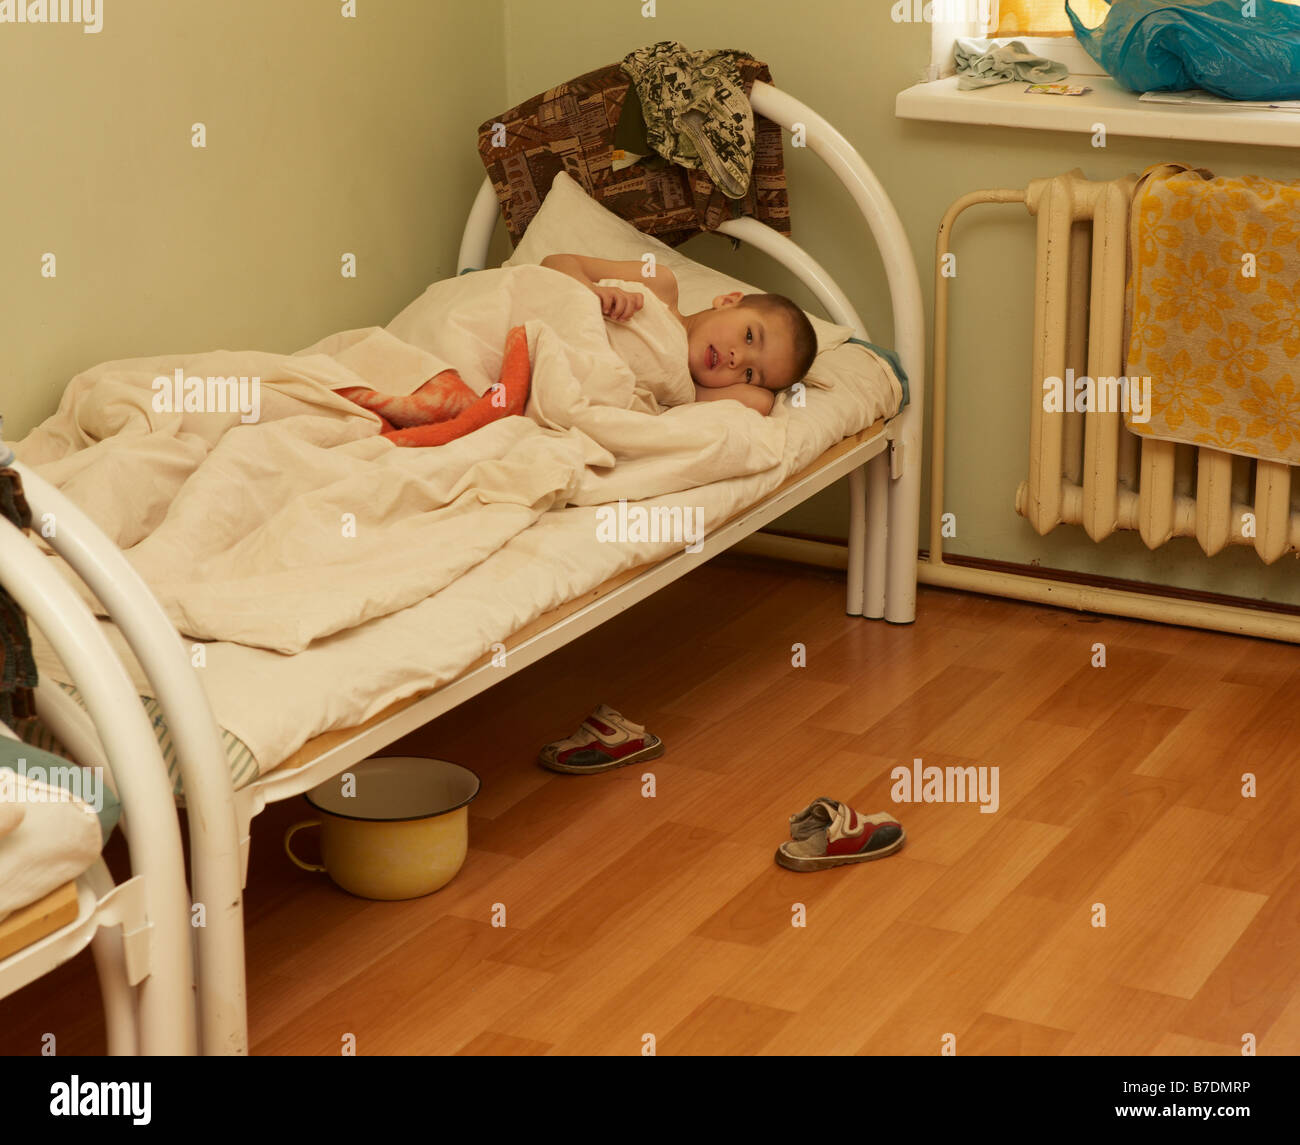 child care center room stock photos child care center room stock images alamy. Black Bedroom Furniture Sets. Home Design Ideas